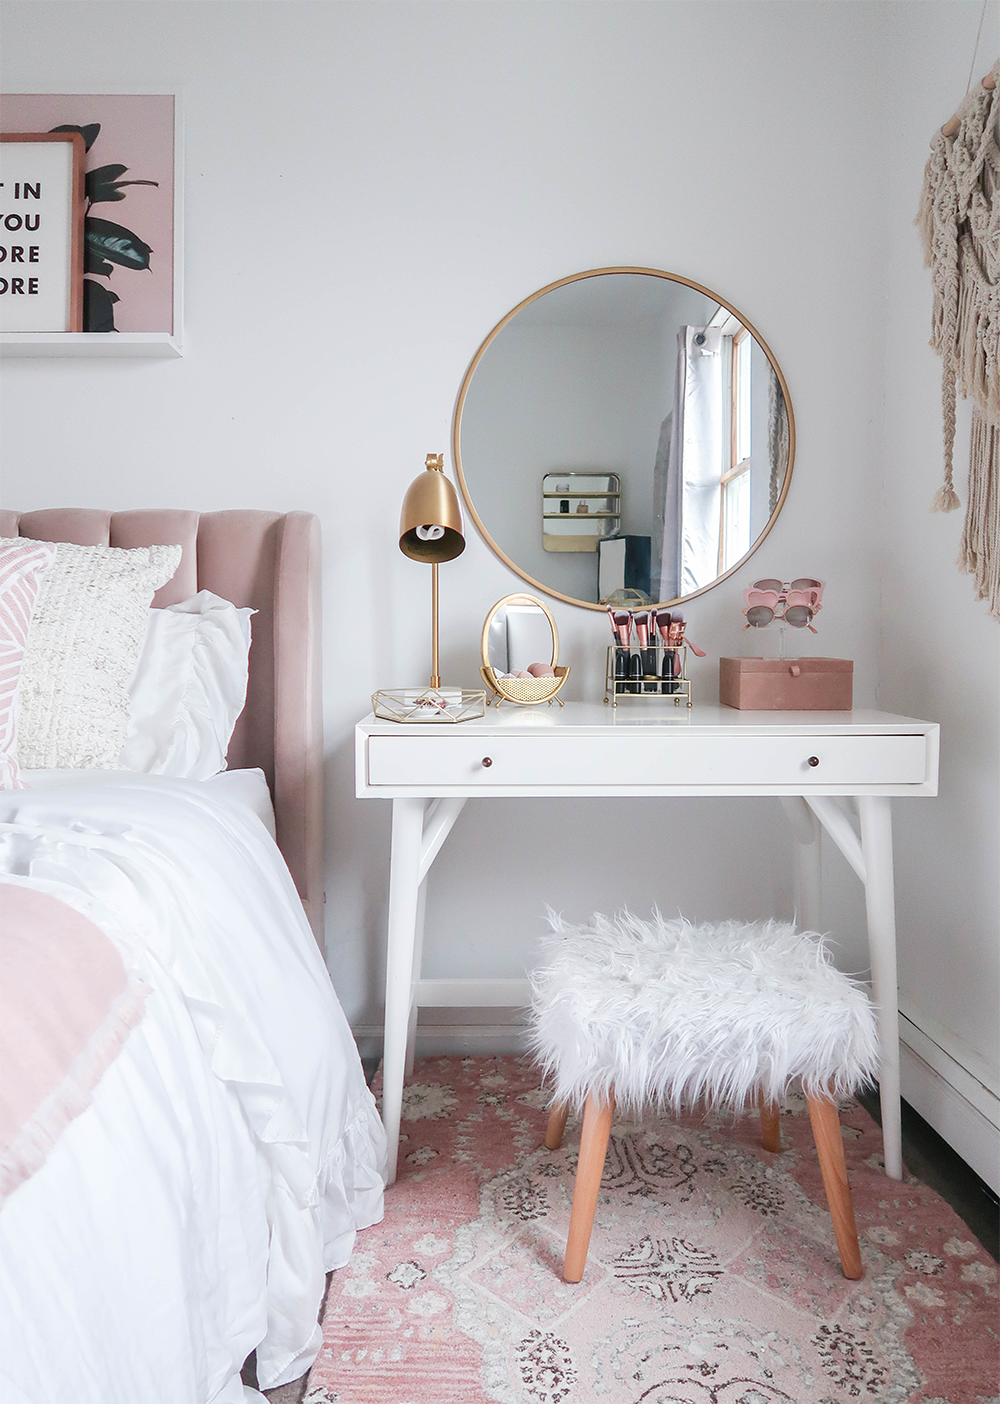 Styling Vanity In Small Space Influenceher